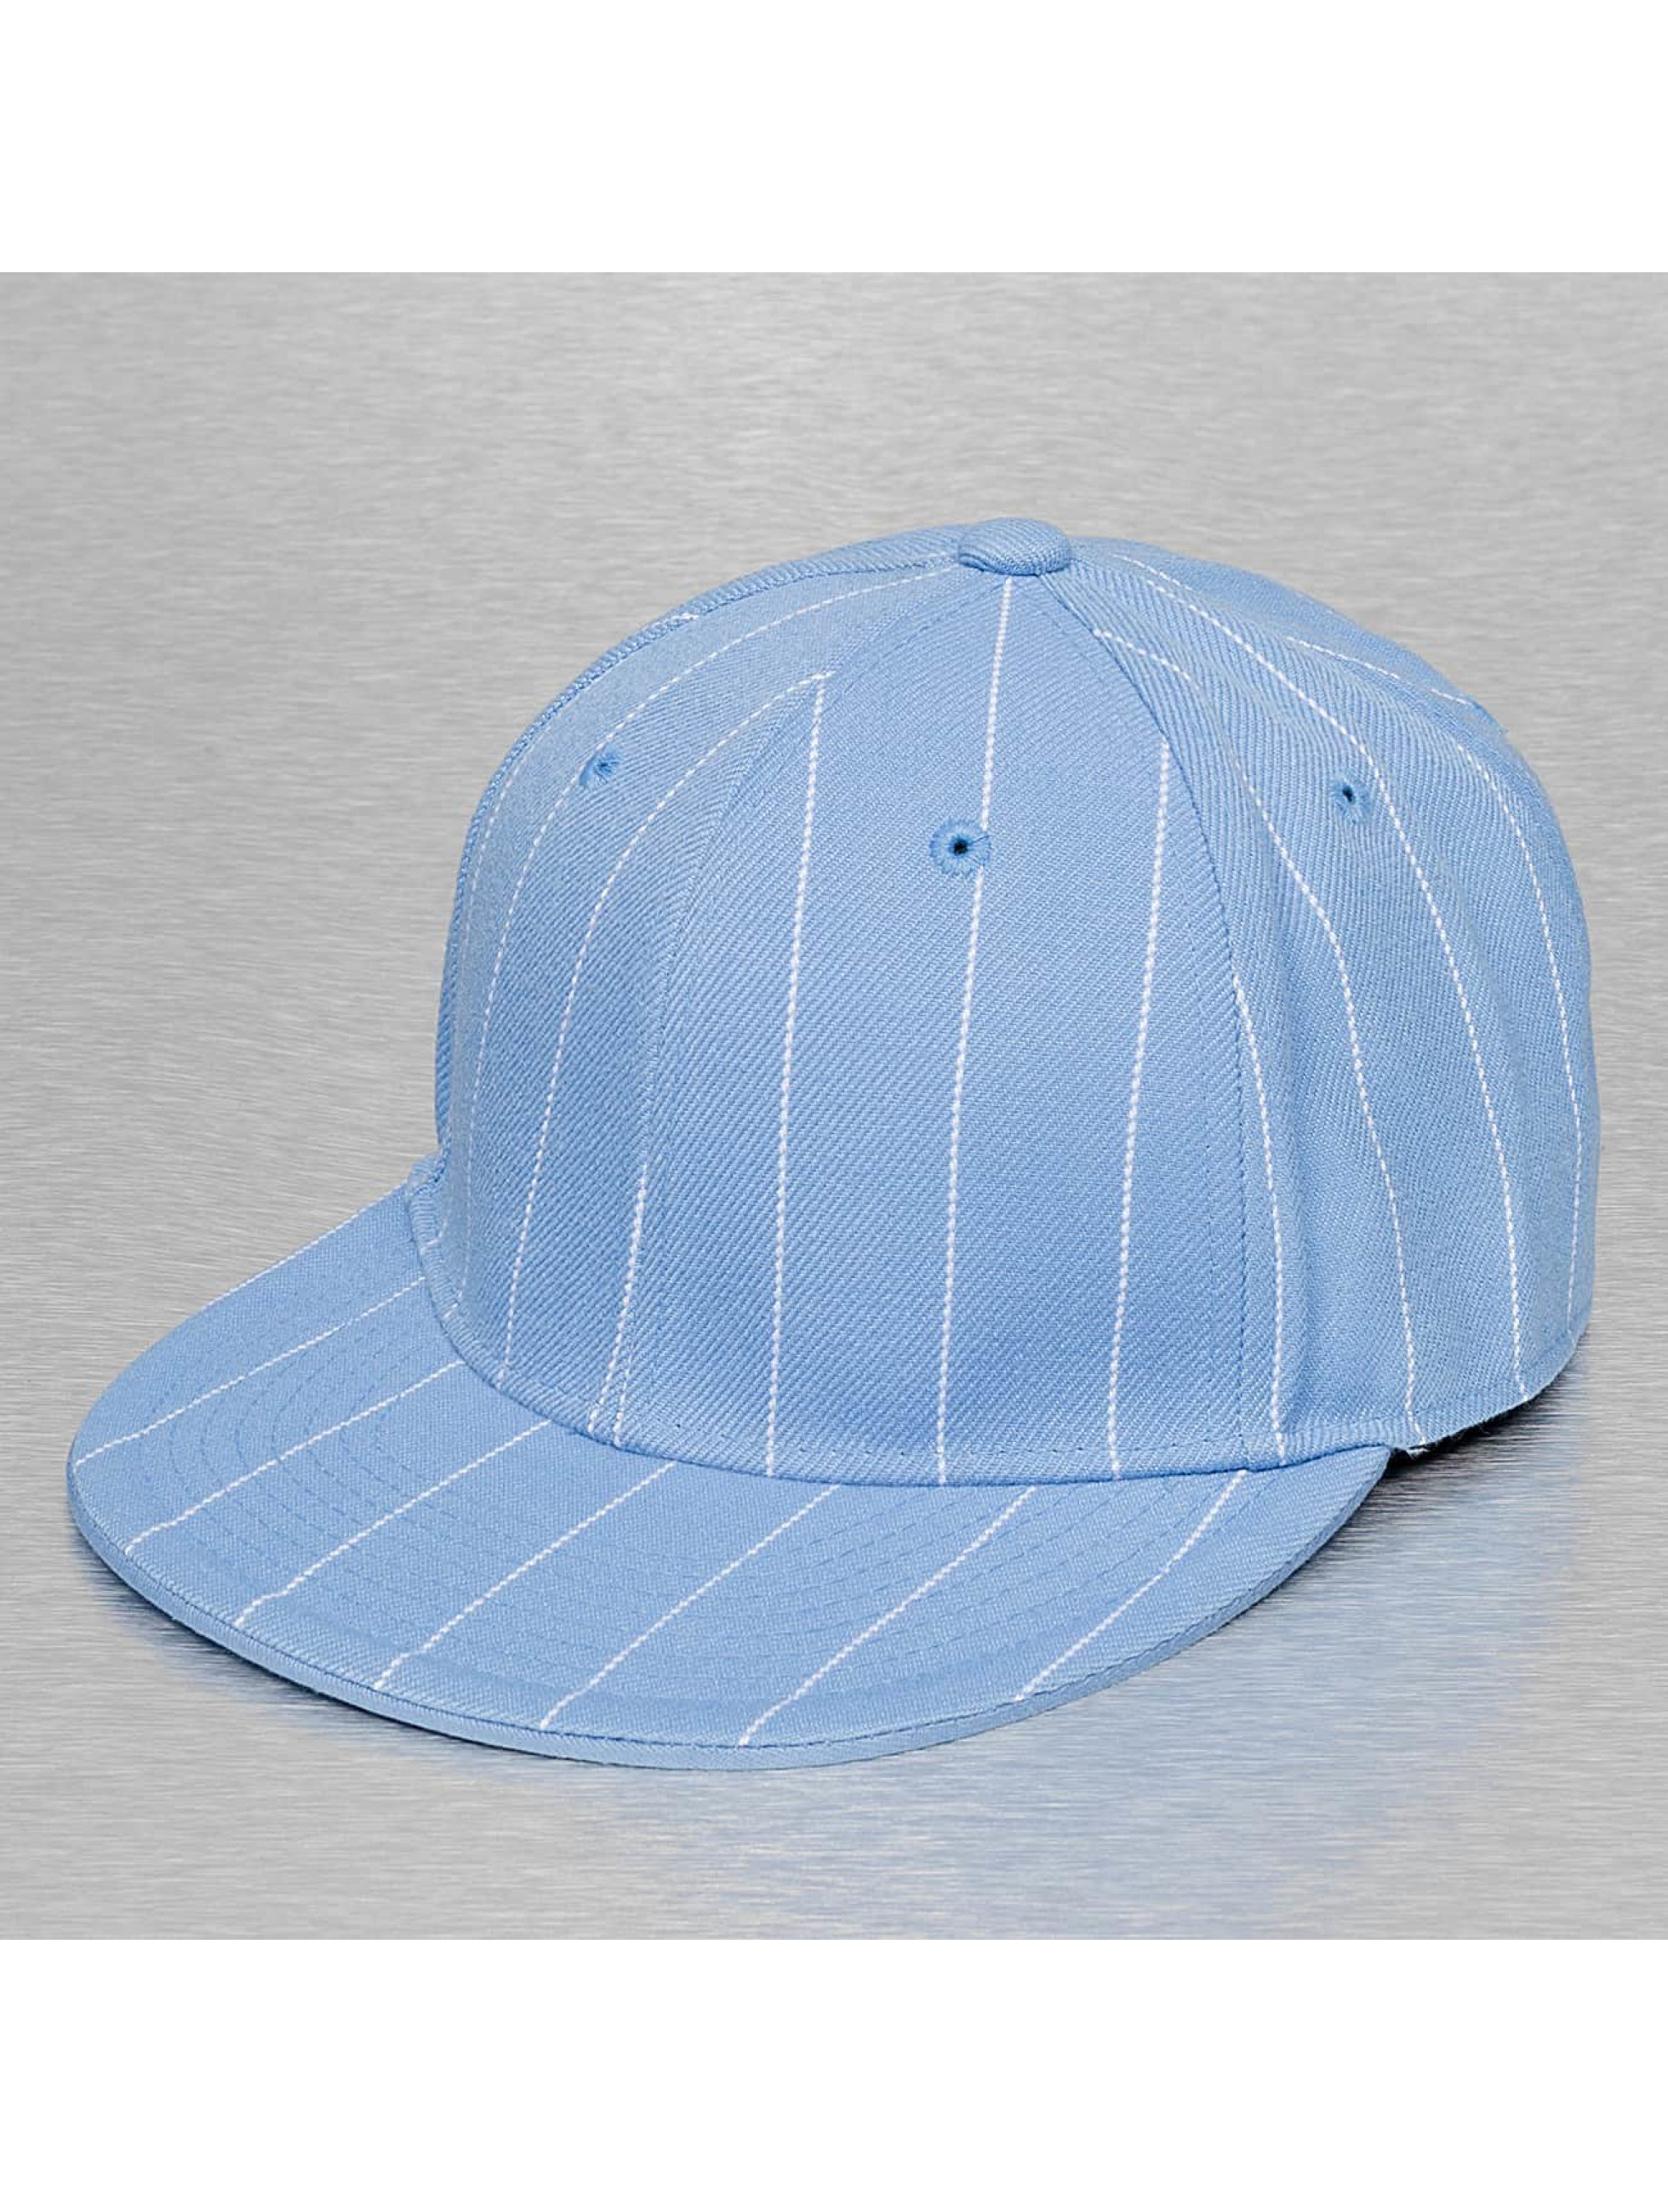 Cap Crony Männer,Frauen Fitted Cap Pin Striped in blau